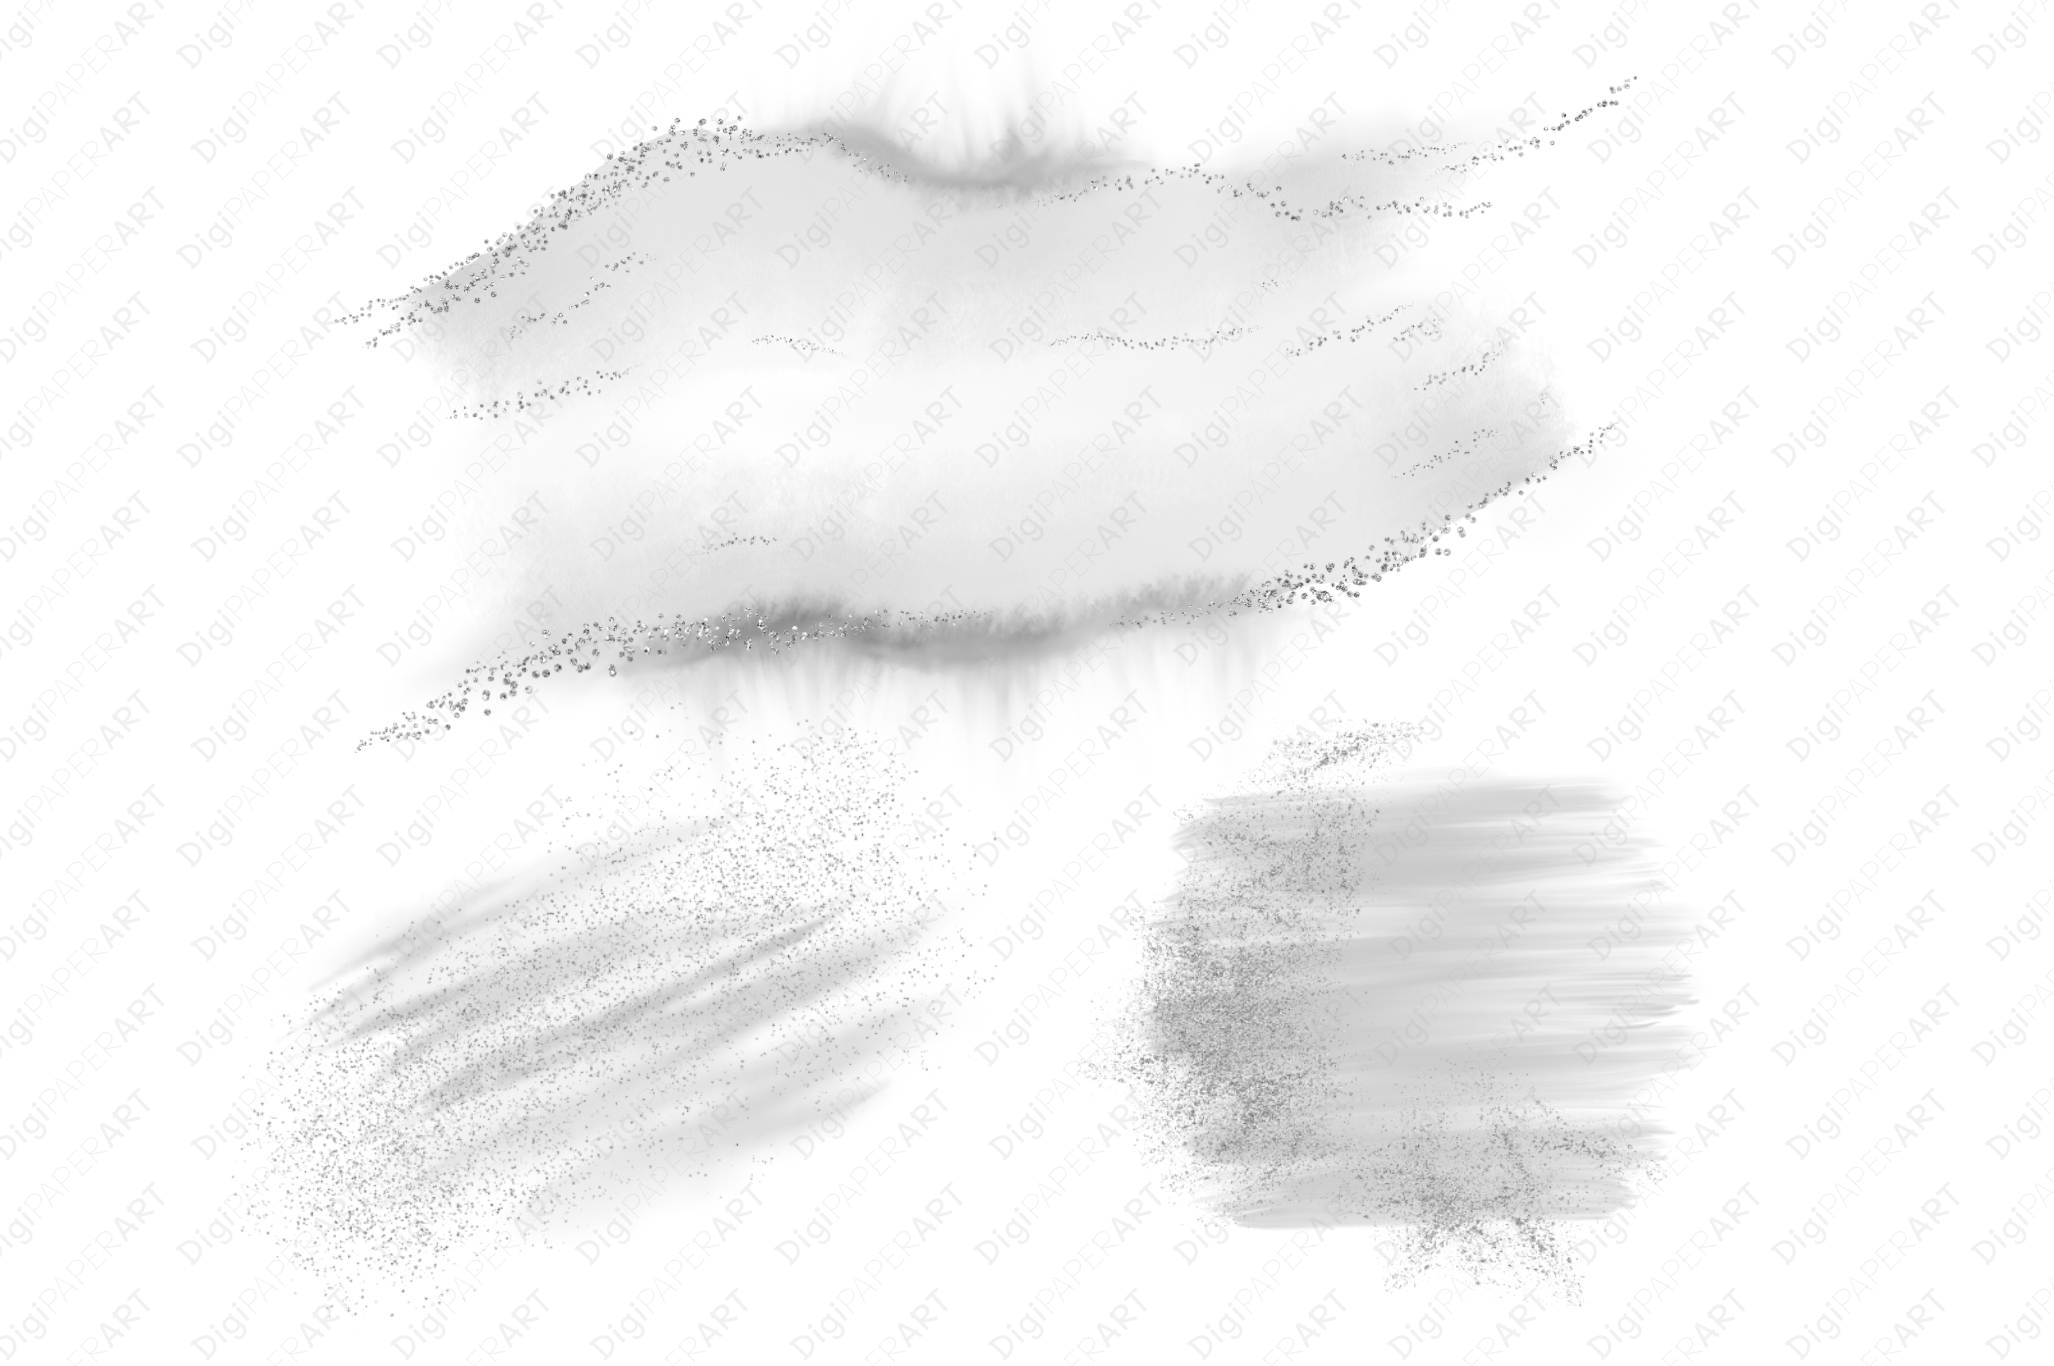 Silver Glitter and Grey Watercolor Backgrounds example image 3